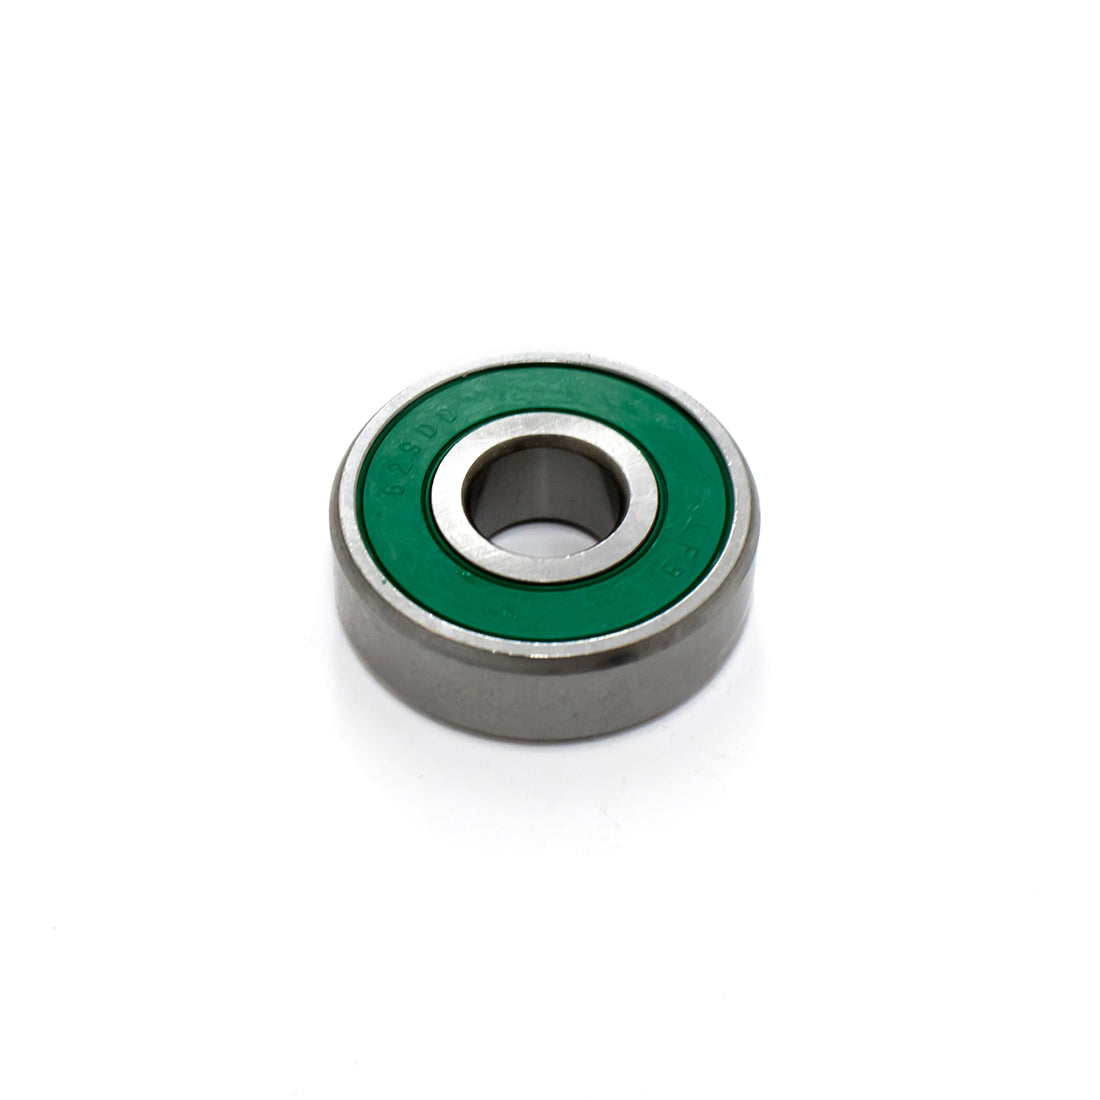 [MBA-030] 629 bearing - (For Polisher)